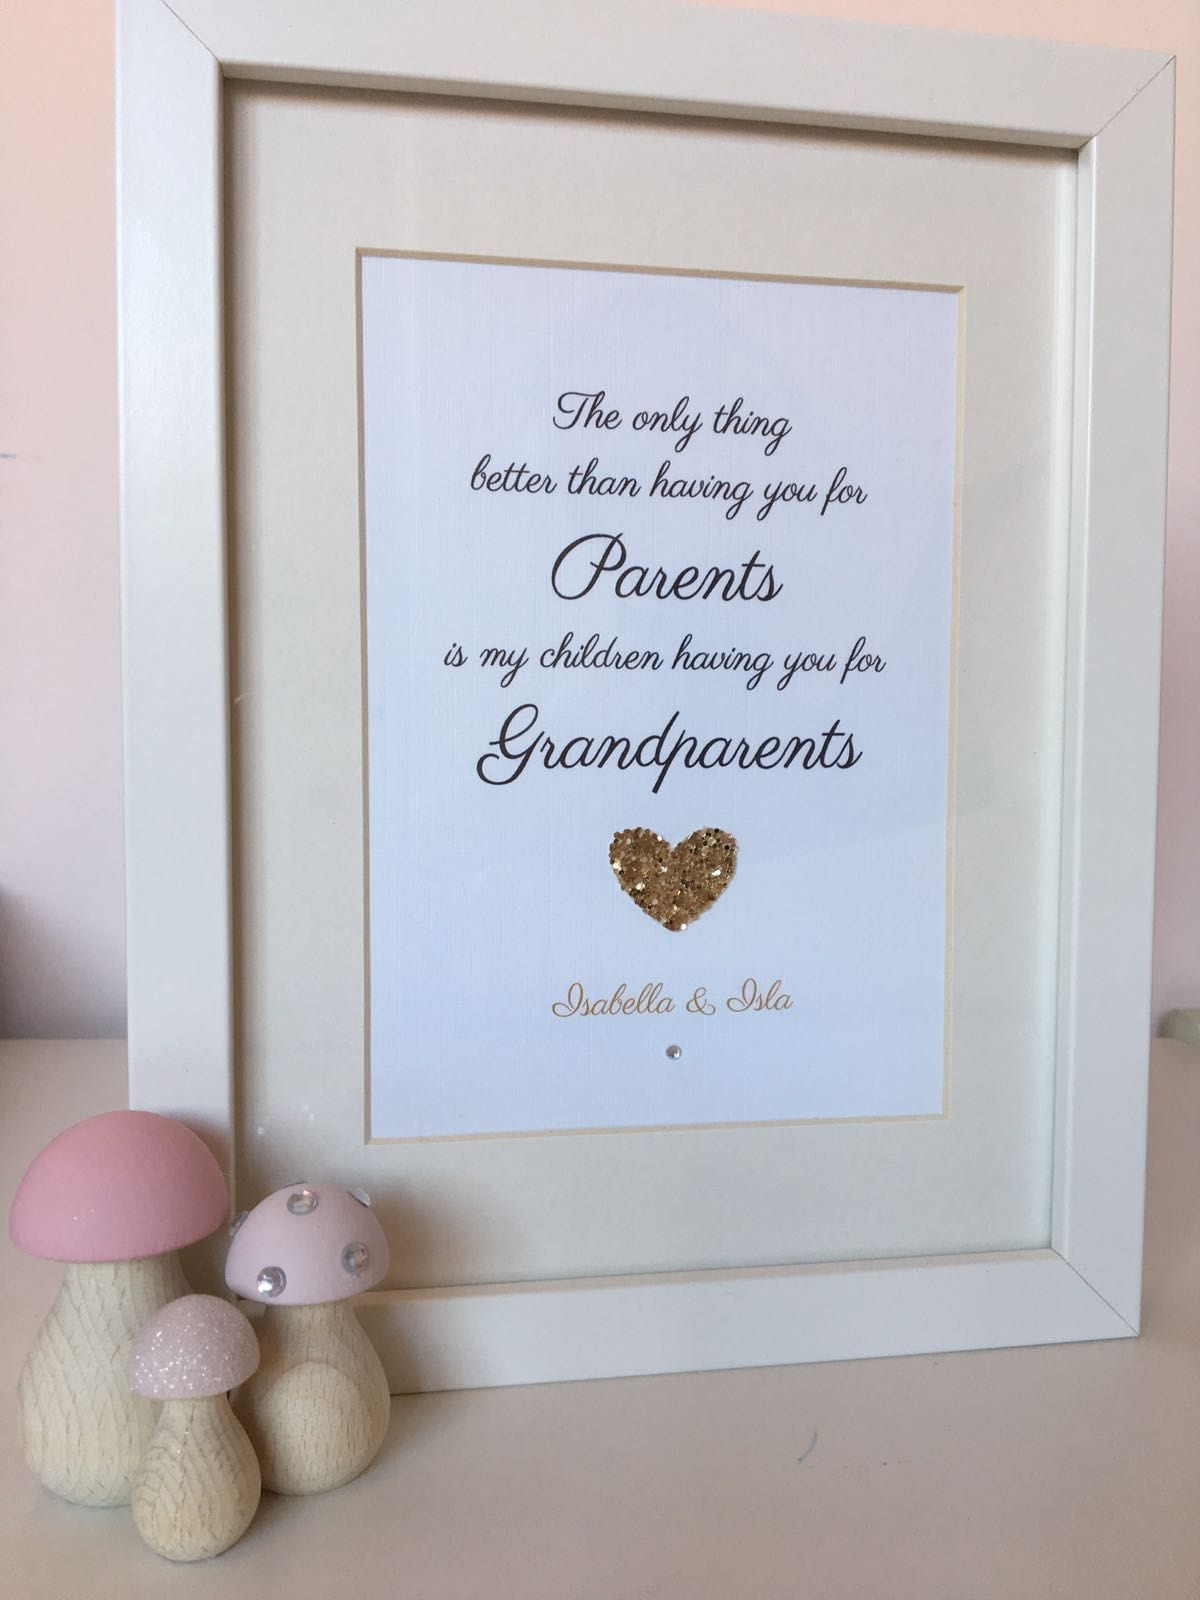 grandparents-the-only-thing-better-flat-framed-print-with-glitter-heart-[3]-13068-p.jpg